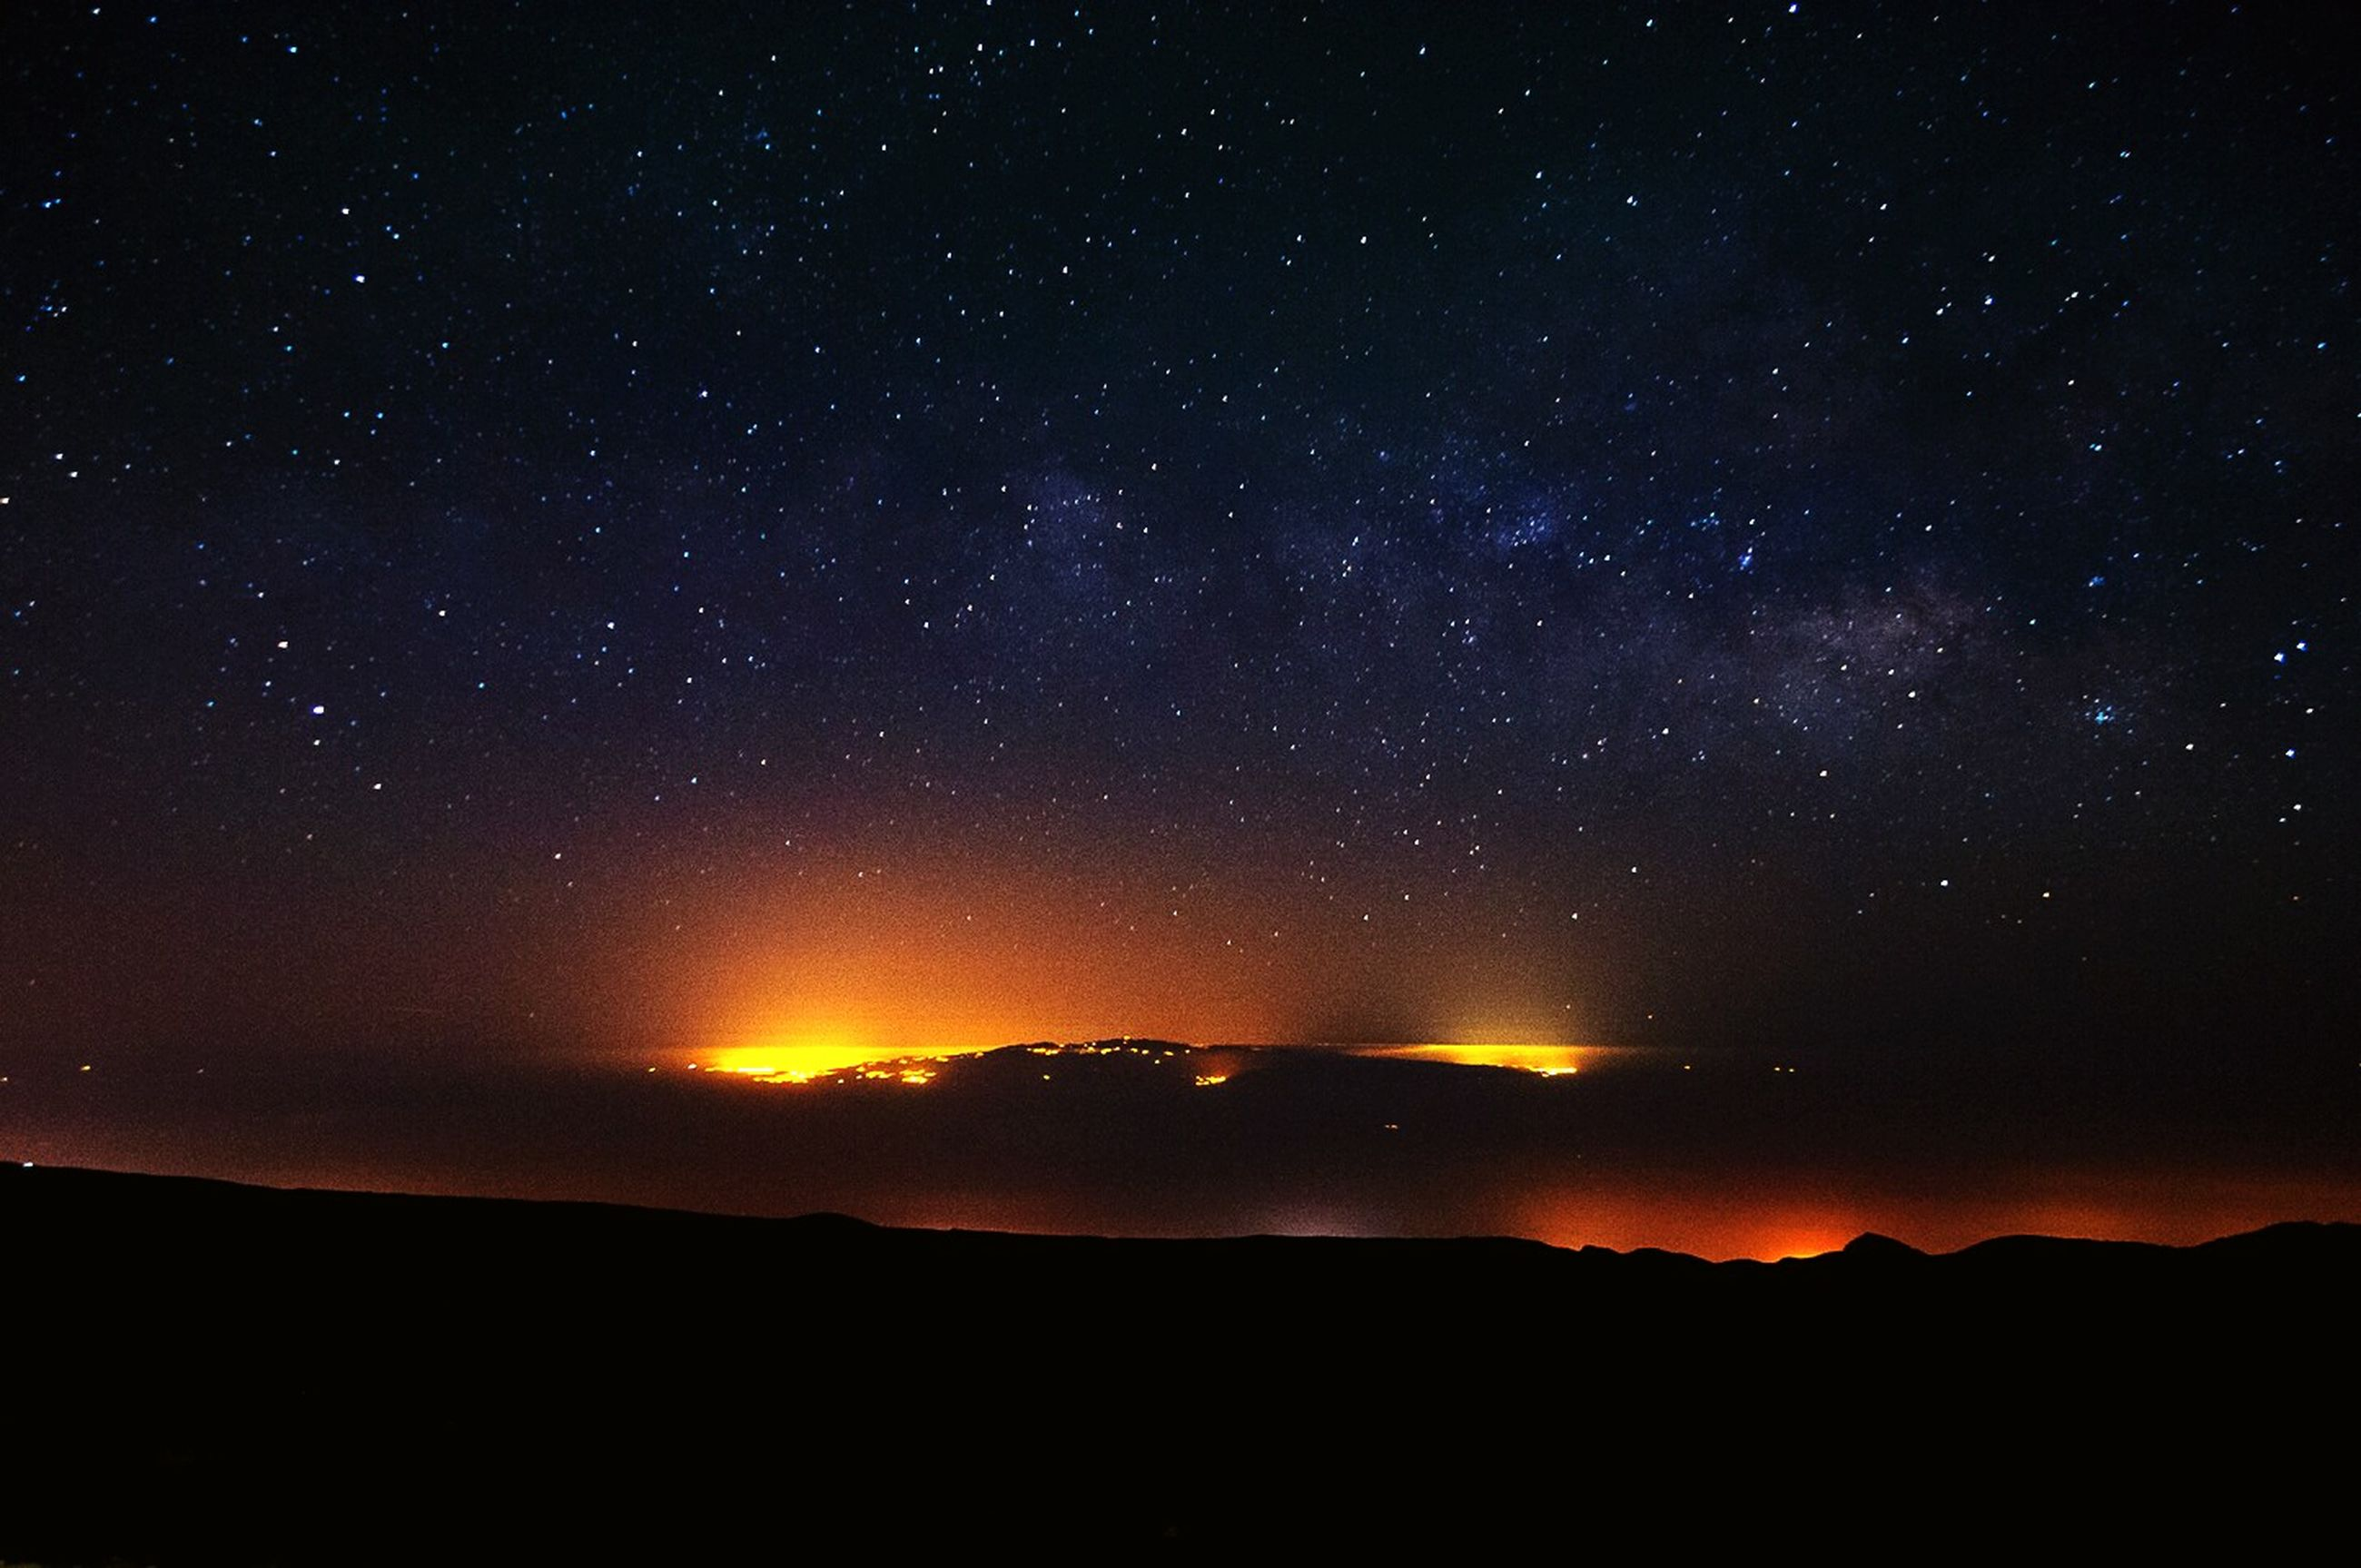 scenics, night, tranquil scene, star - space, beauty in nature, star field, astronomy, tranquility, sky, space, galaxy, nature, star, idyllic, majestic, silhouette, dark, landscape, milky way, infinity